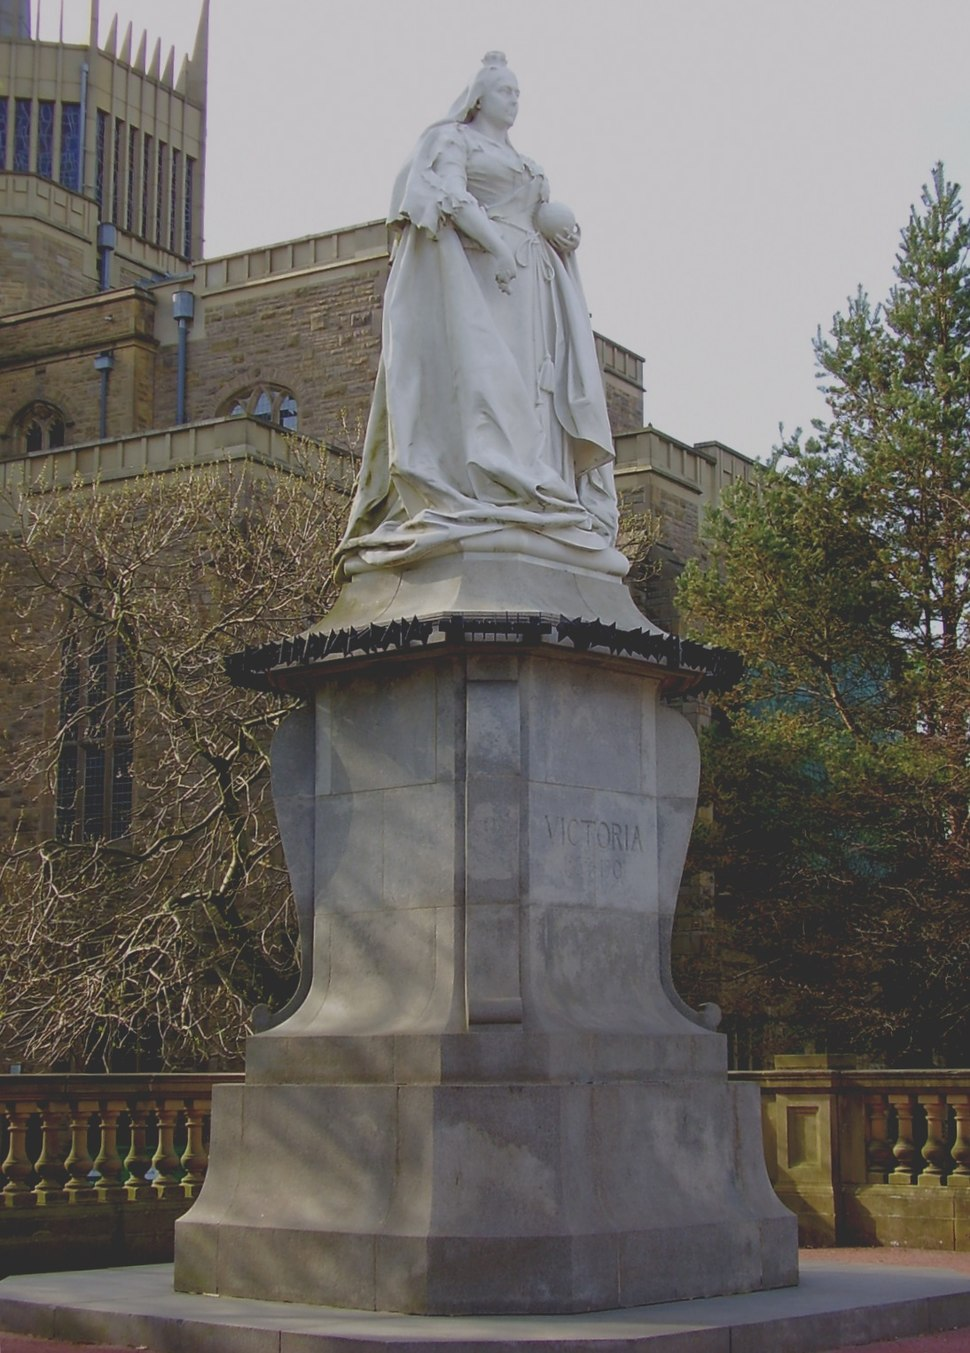 Statue of Queen Victoria in Blackburn